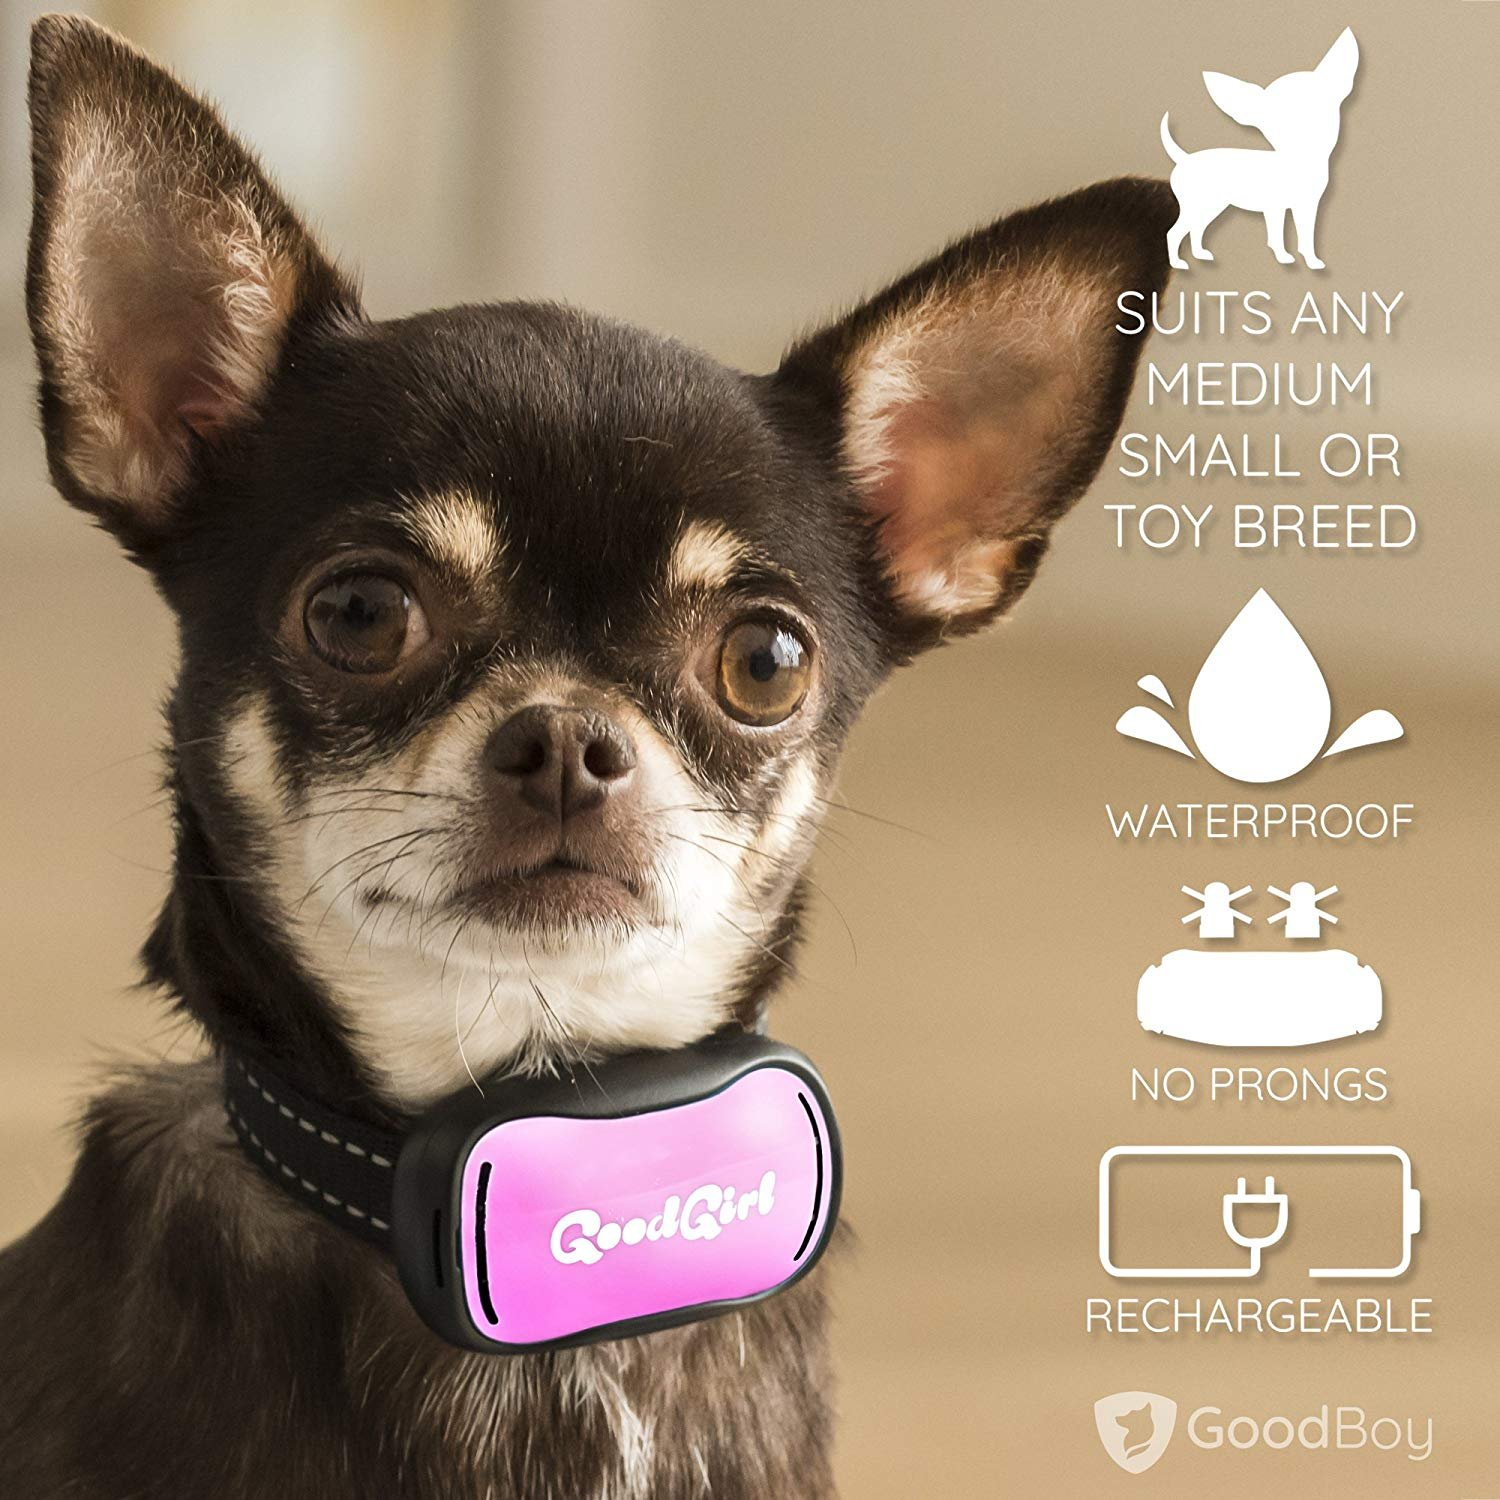 GoodBoy Small Rechargeable Dog Bark Collar for Tiny to Medium Dogs Waterproof and Vibrating Anti Bark Training Device That is Smallest & Most Safe On Amazon - No Shock No Spiky Prongs! (6+ lbs) by GoodBoy (Image #7)